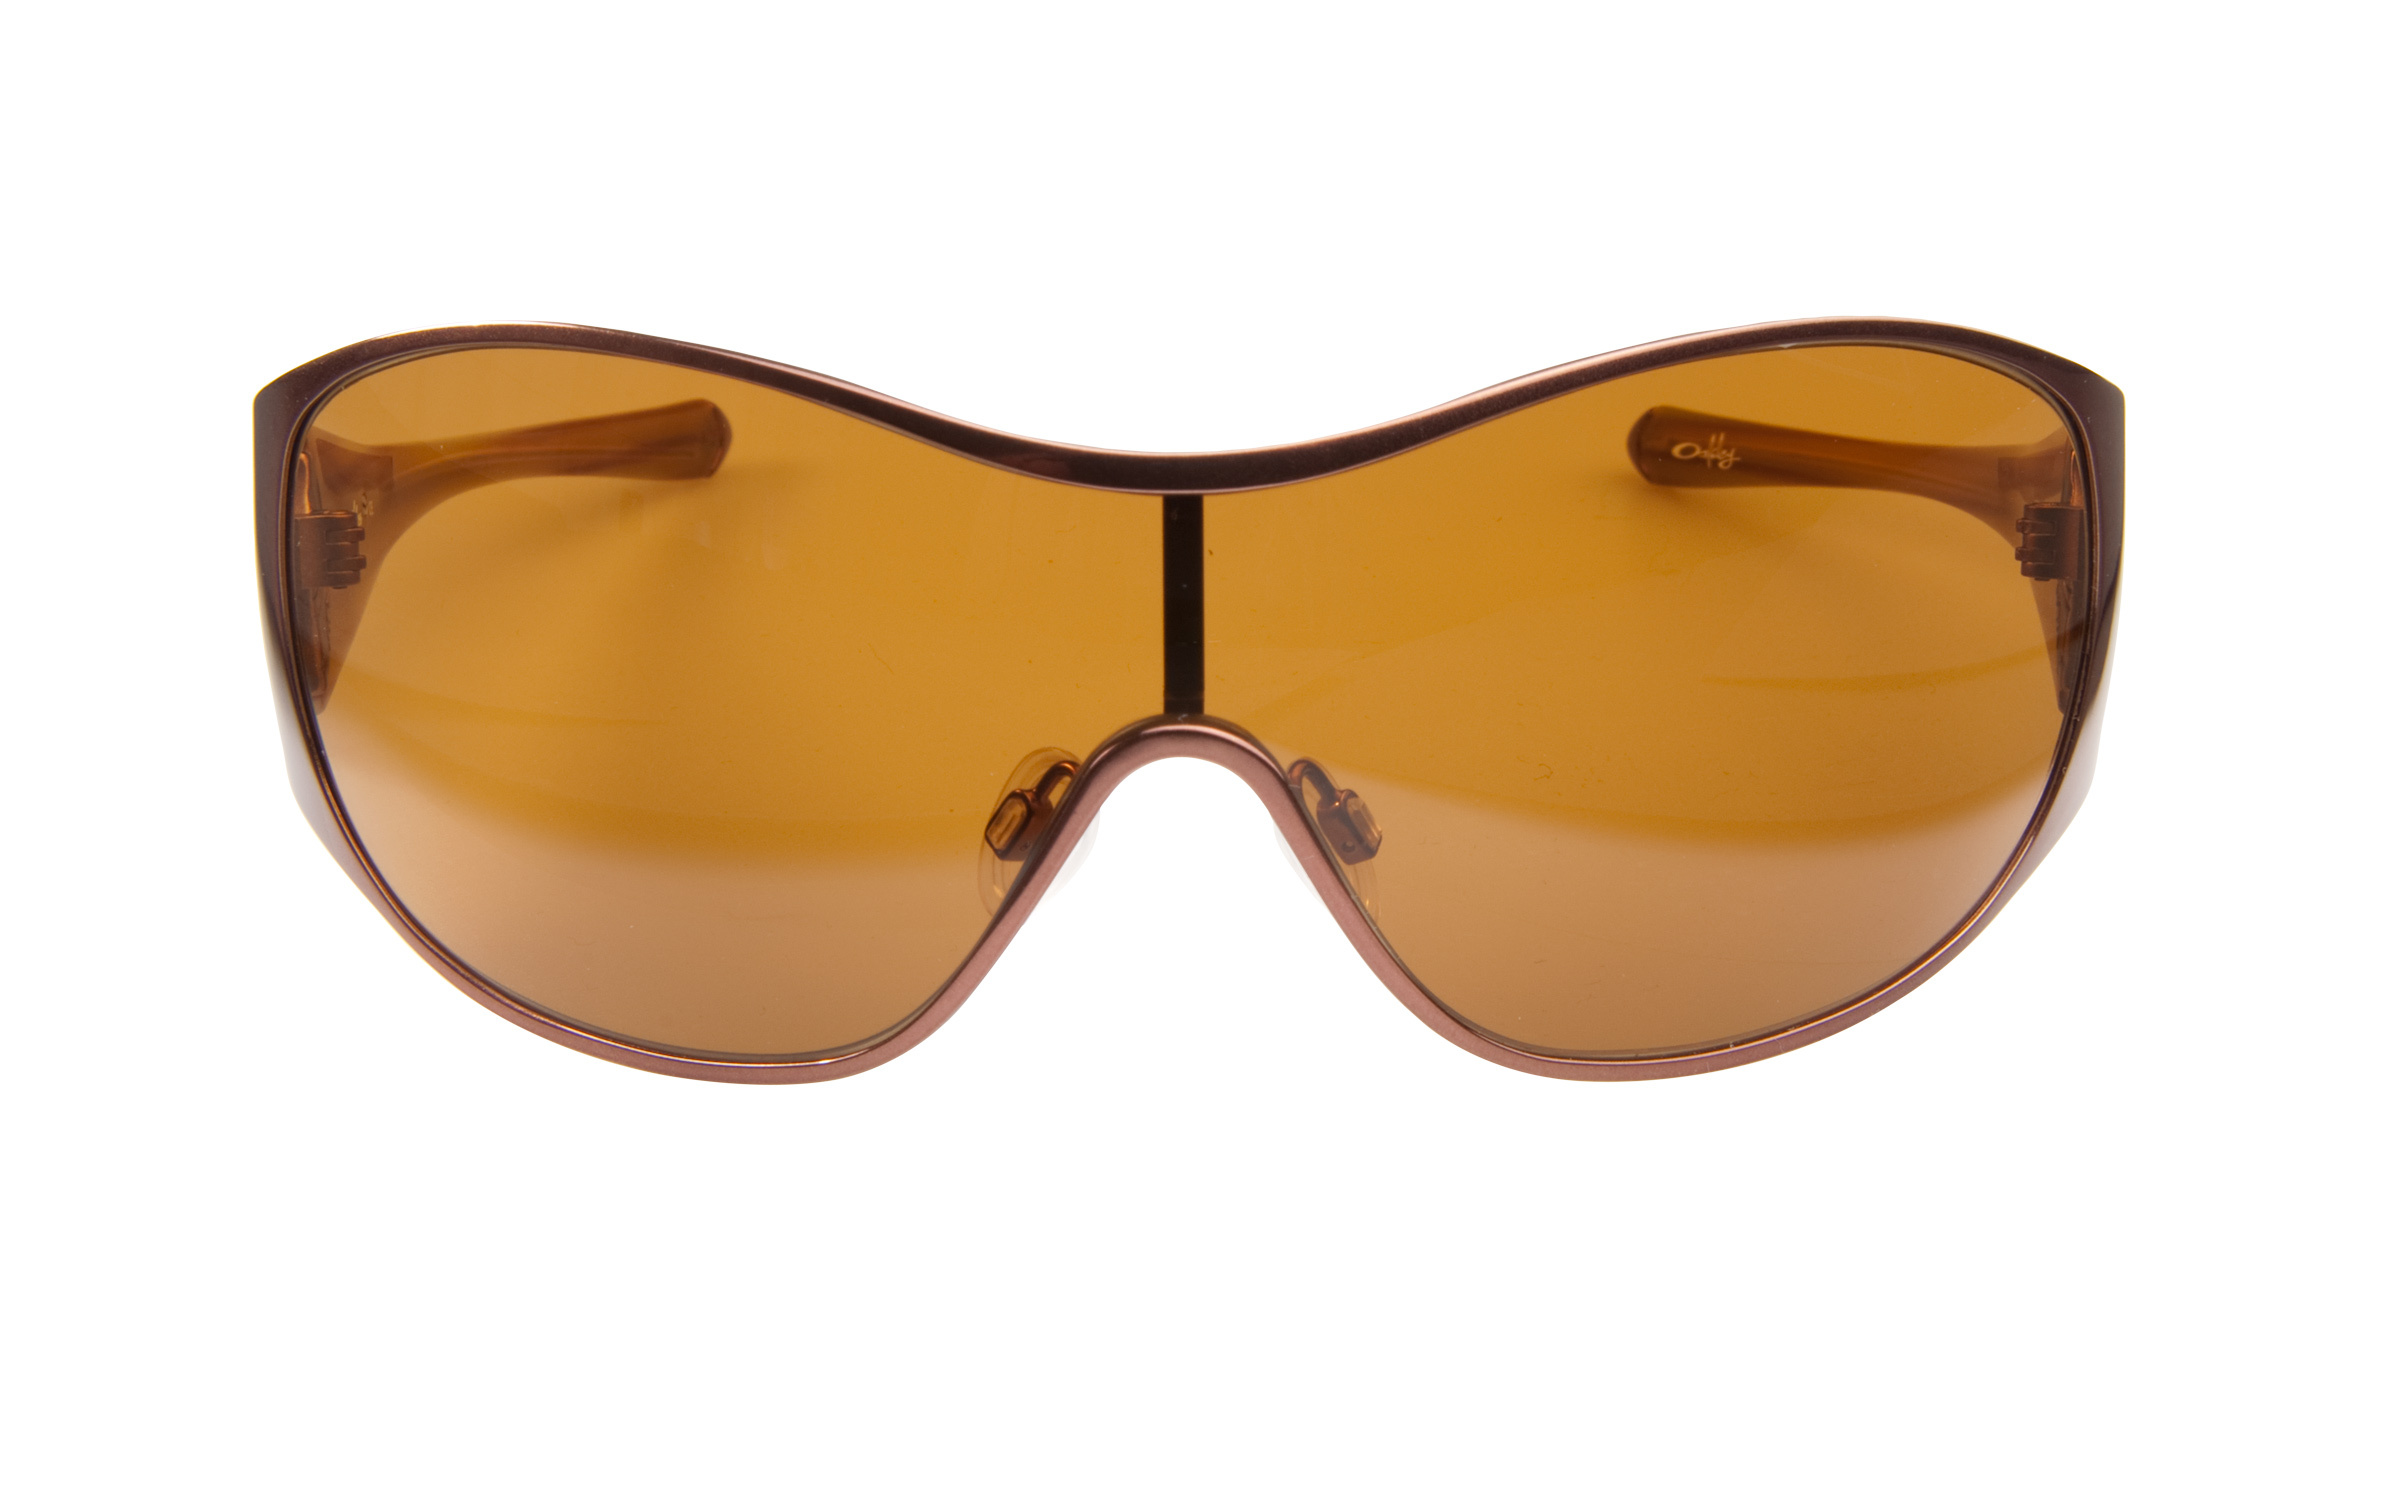 Oakley_Brown_Acetate_Breathless_Sunglasses__Clearly_Glasses_Online